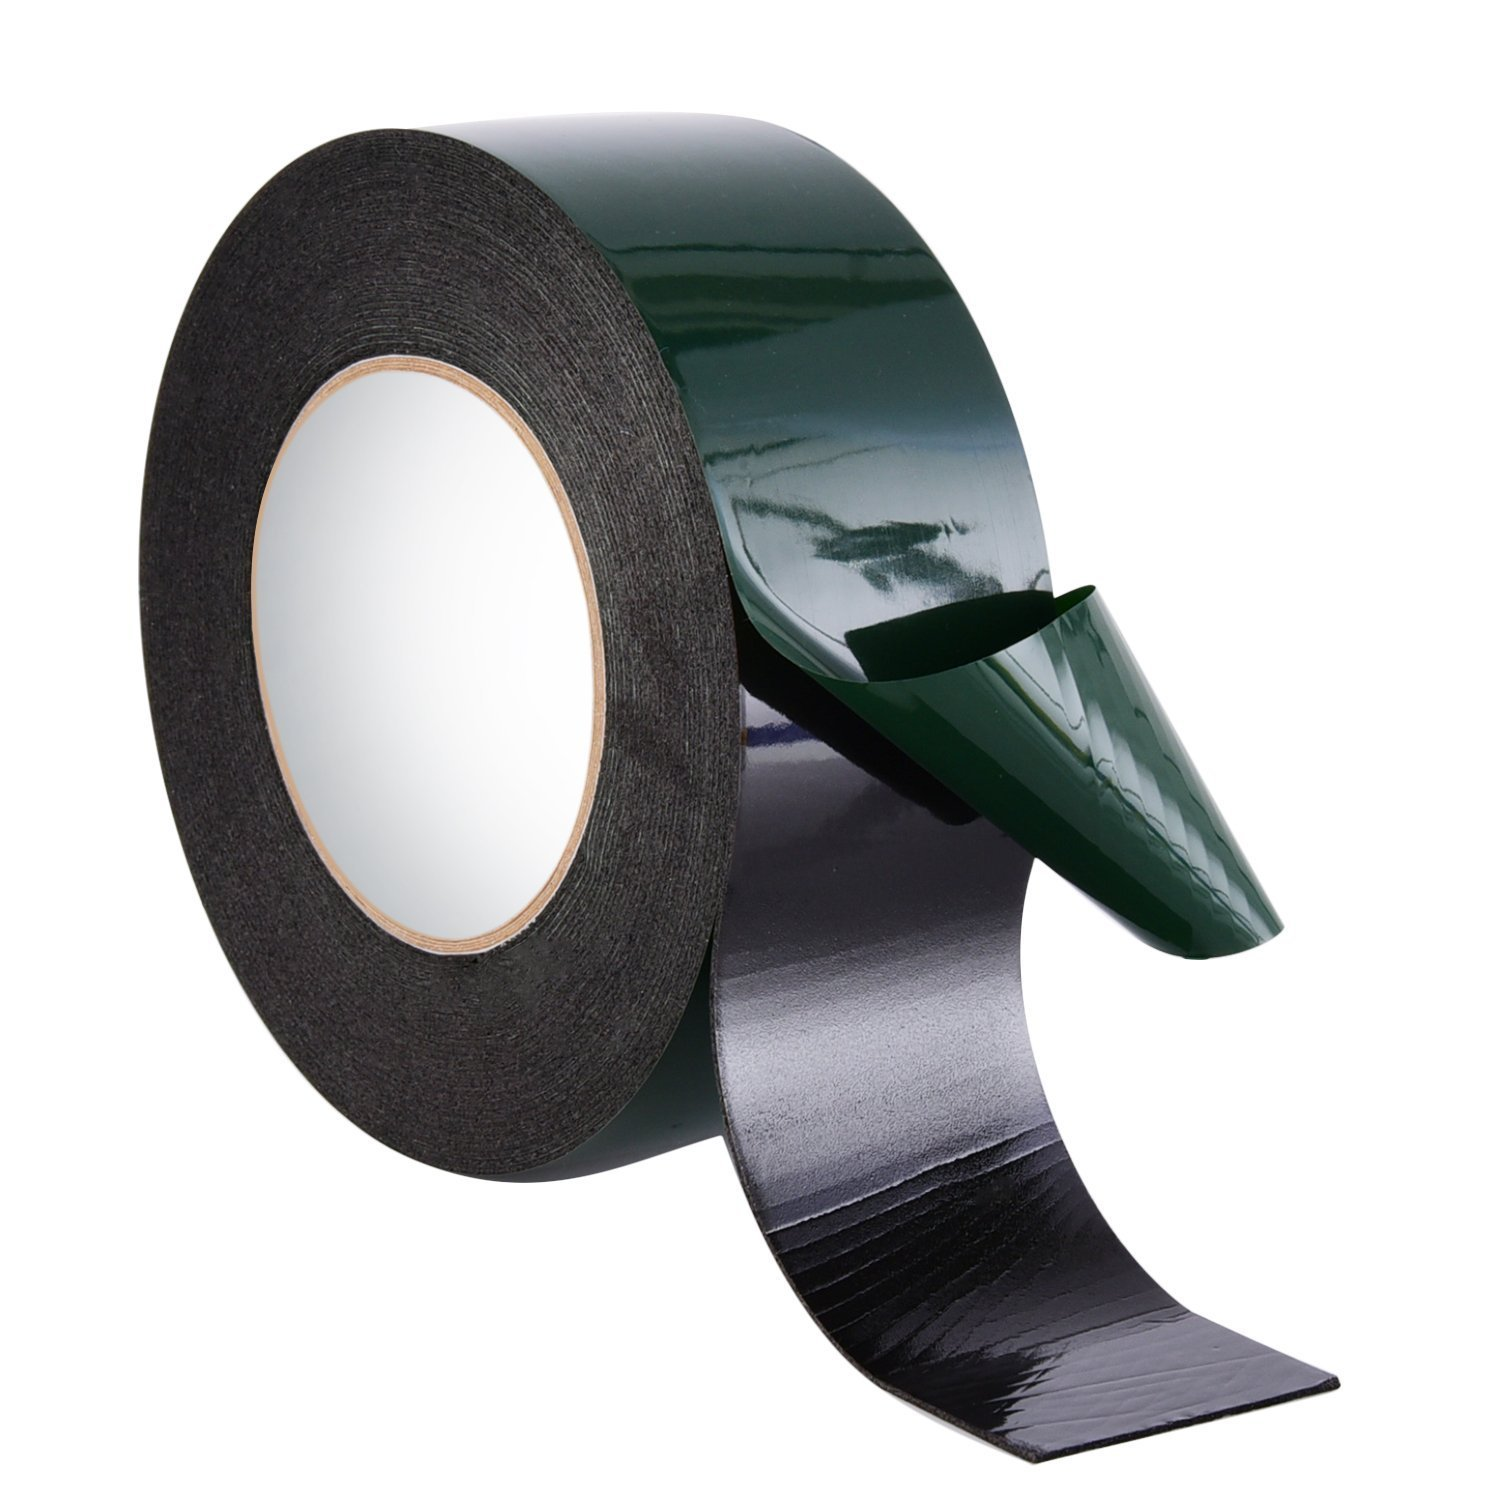 Details about  /Double-sided Tape Practical Electric Scooter Tape Accessories Durable.